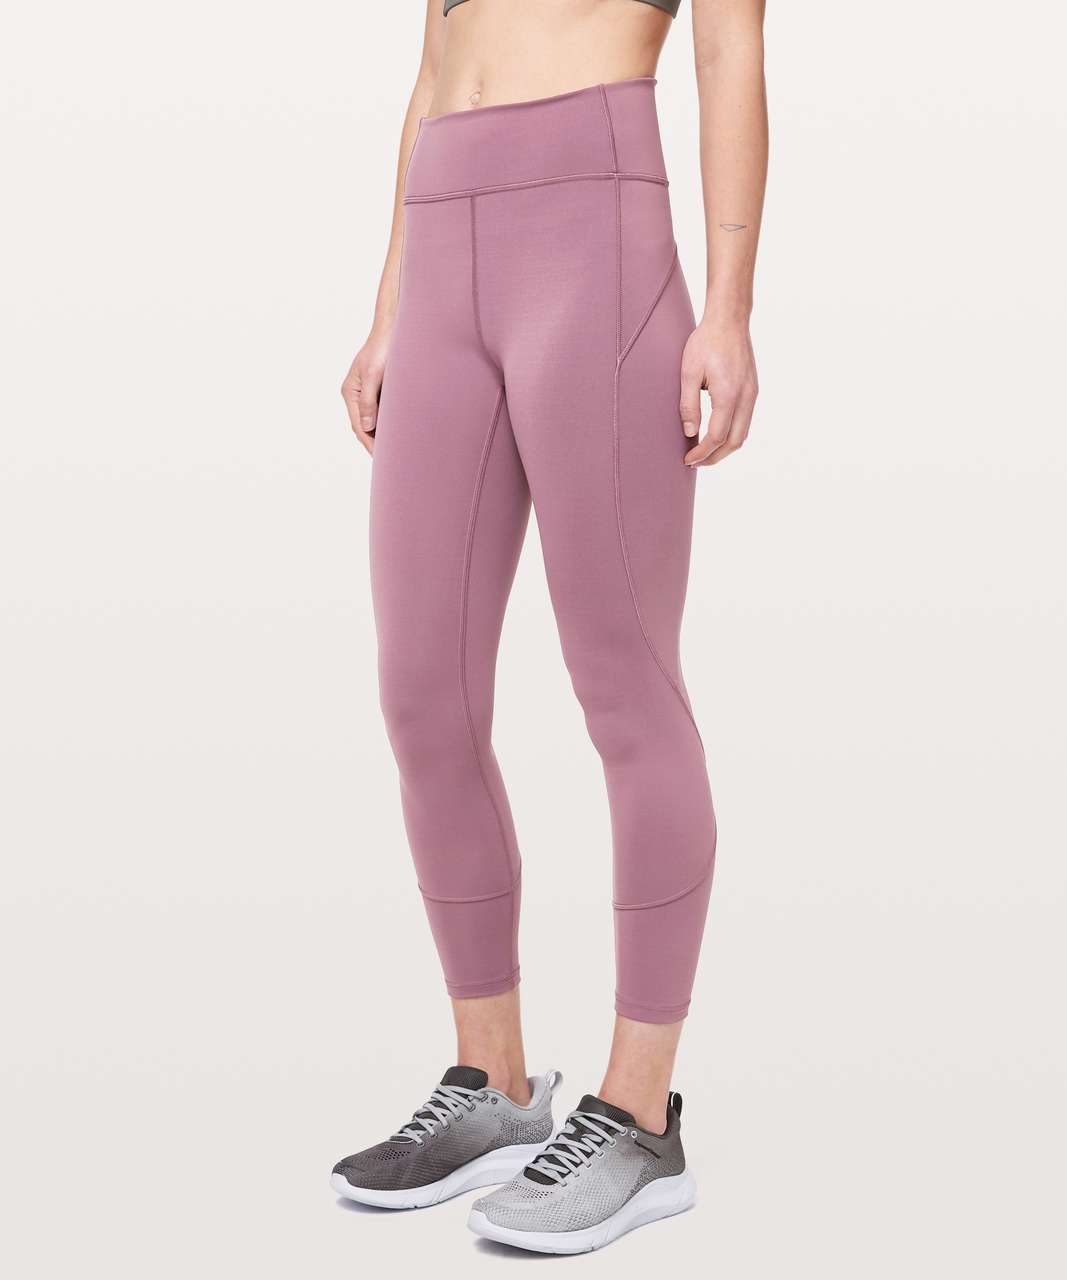 "Lululemon In Movement Tight 25"" *Everlux - Figue"